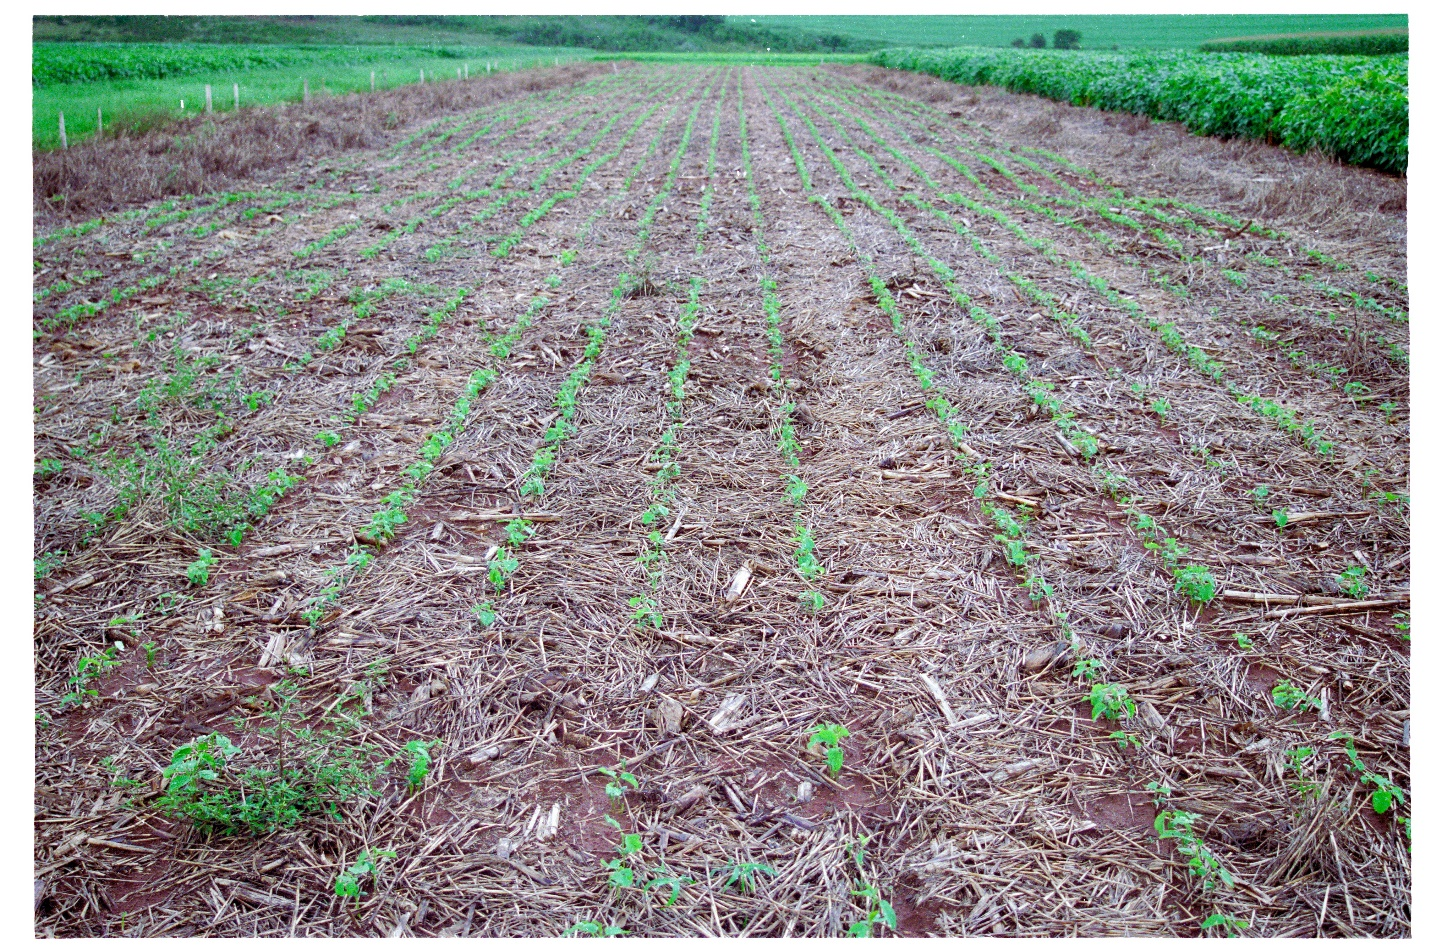 Conservation agriculture in Brazil. The practice protects soil from erosion and improves soil health. (Photo by Y. Niino, FAO).